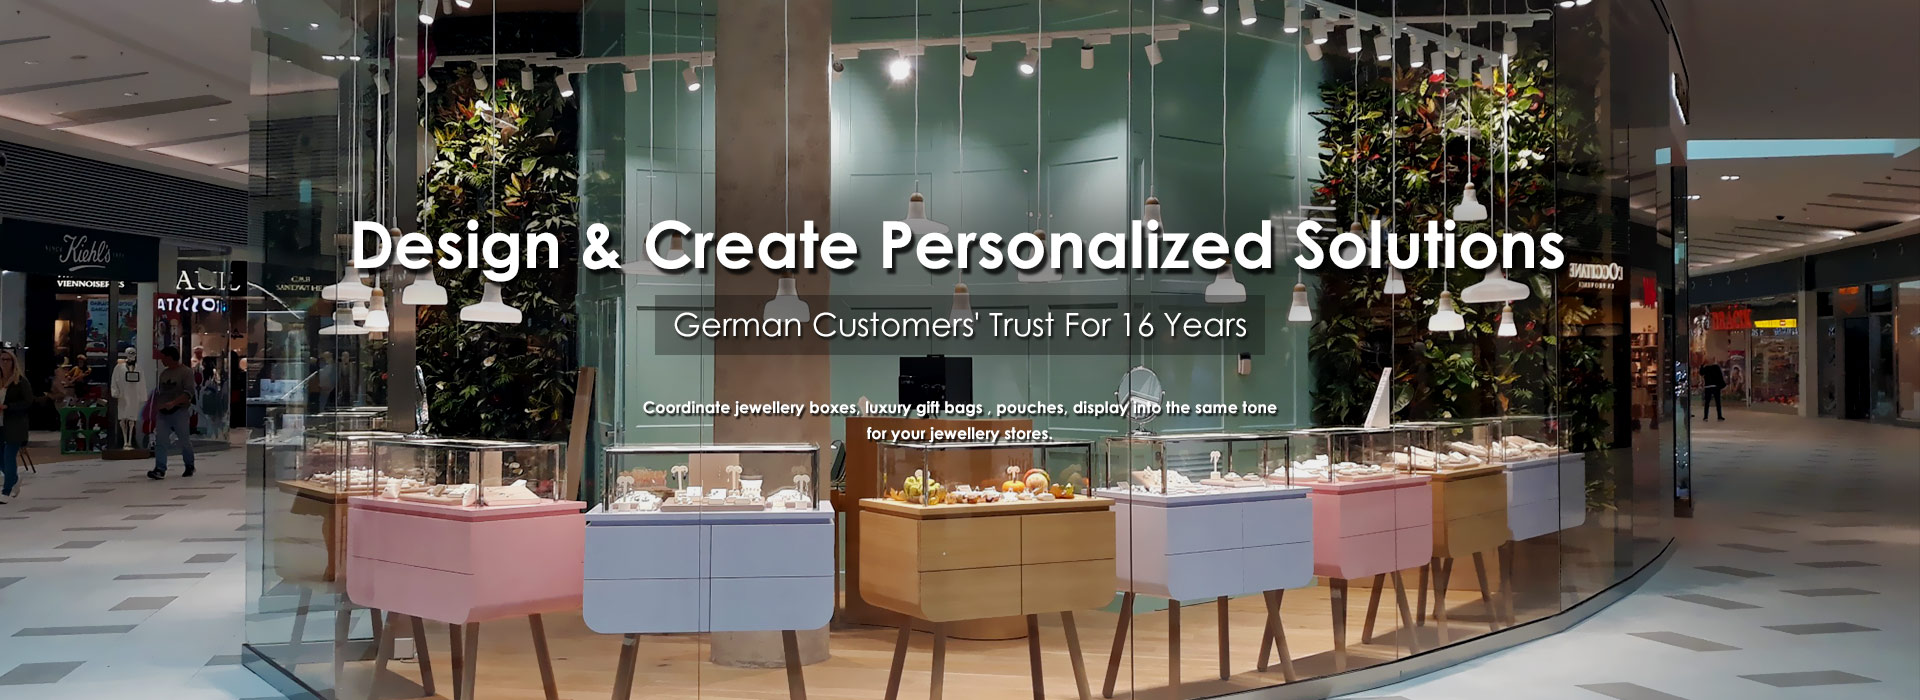 Design & Create Personalized Solutions